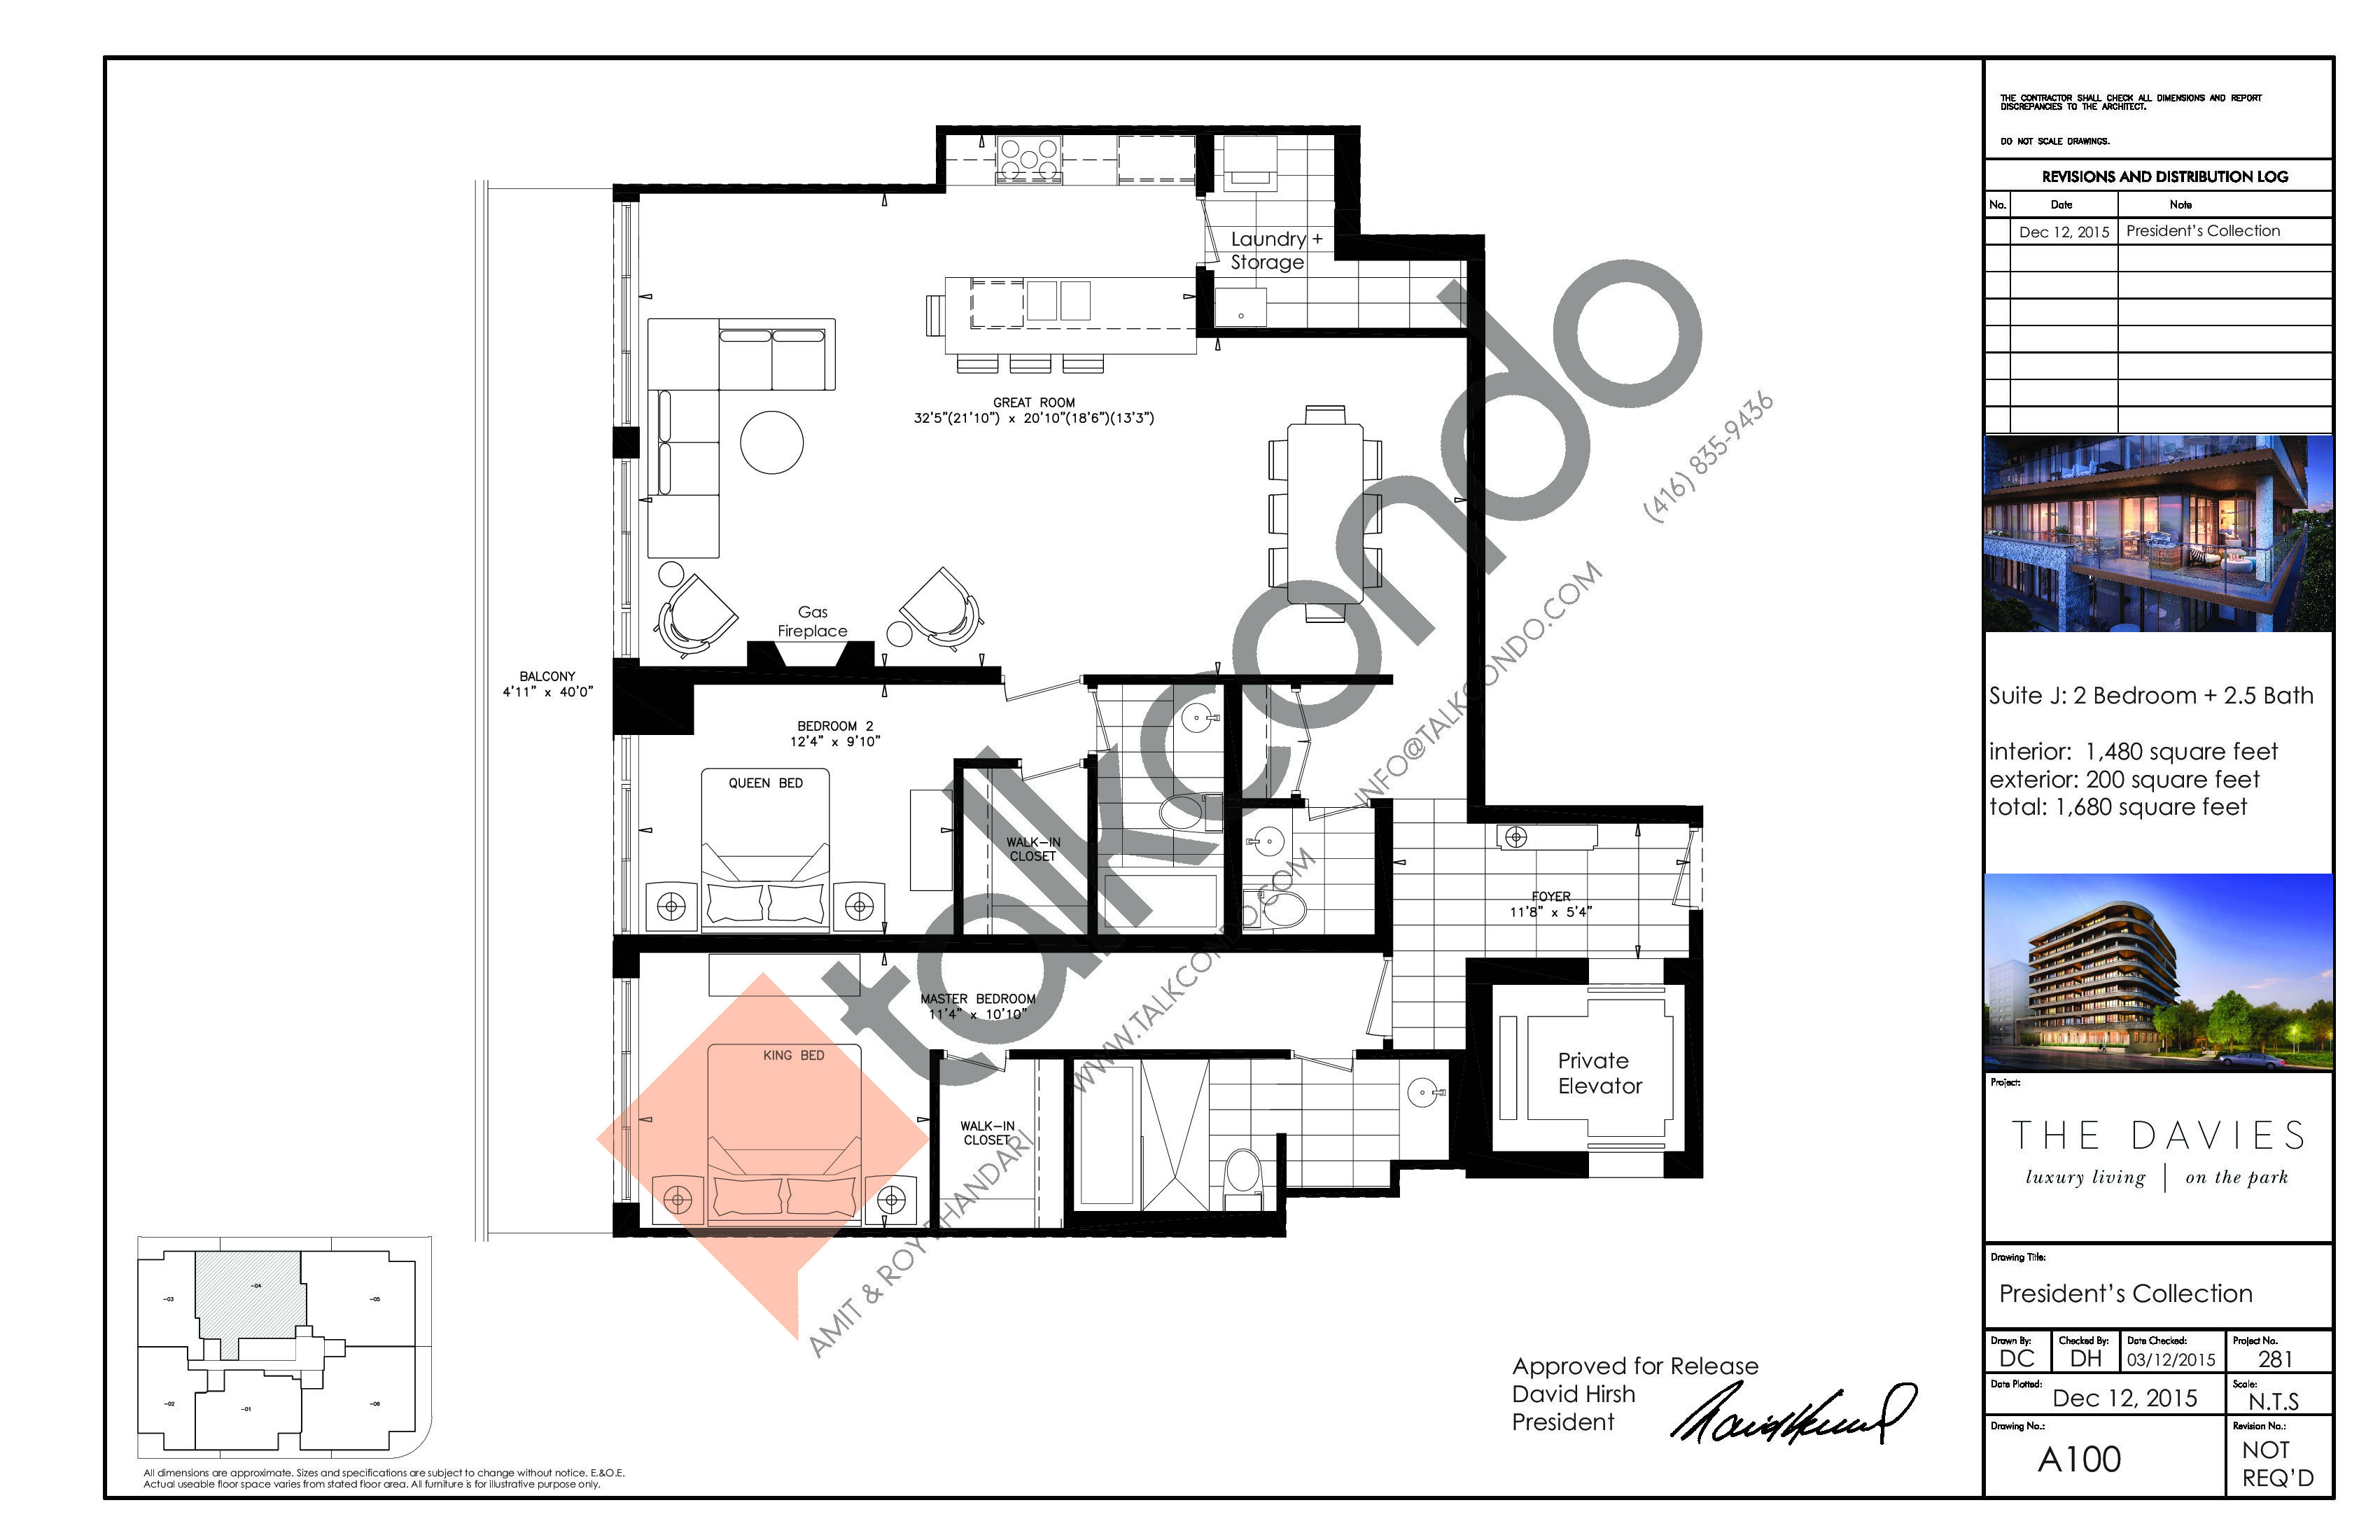 Suite J Floor Plan at The Davies - 1480 sq.ft